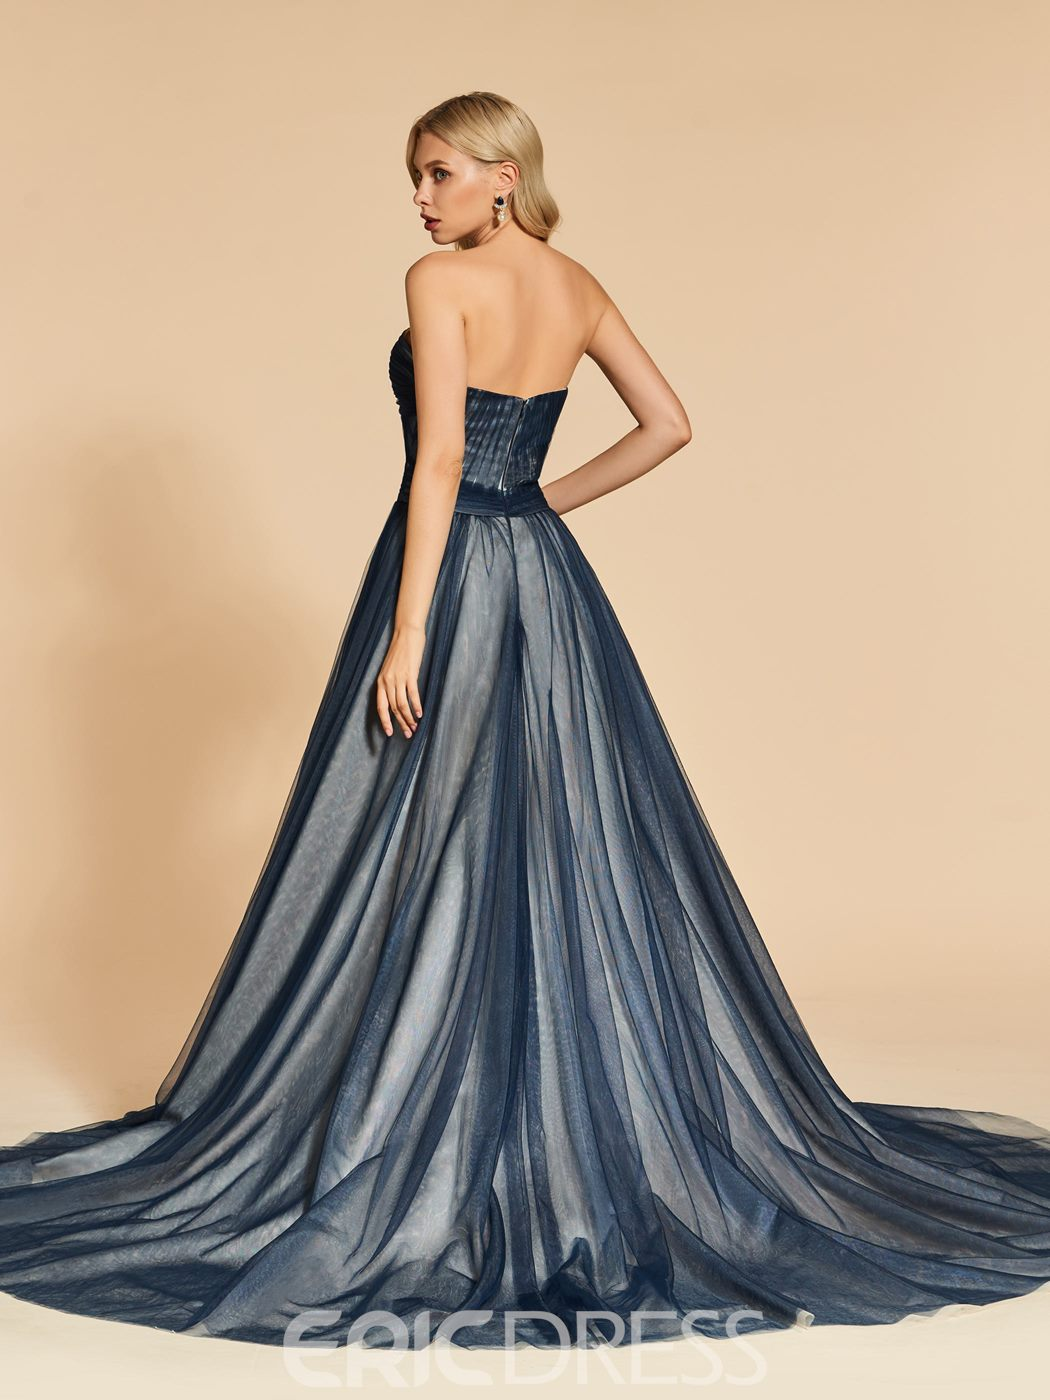 Ericdress A Line Sweetheart Pleats Long Evening Dress With Train